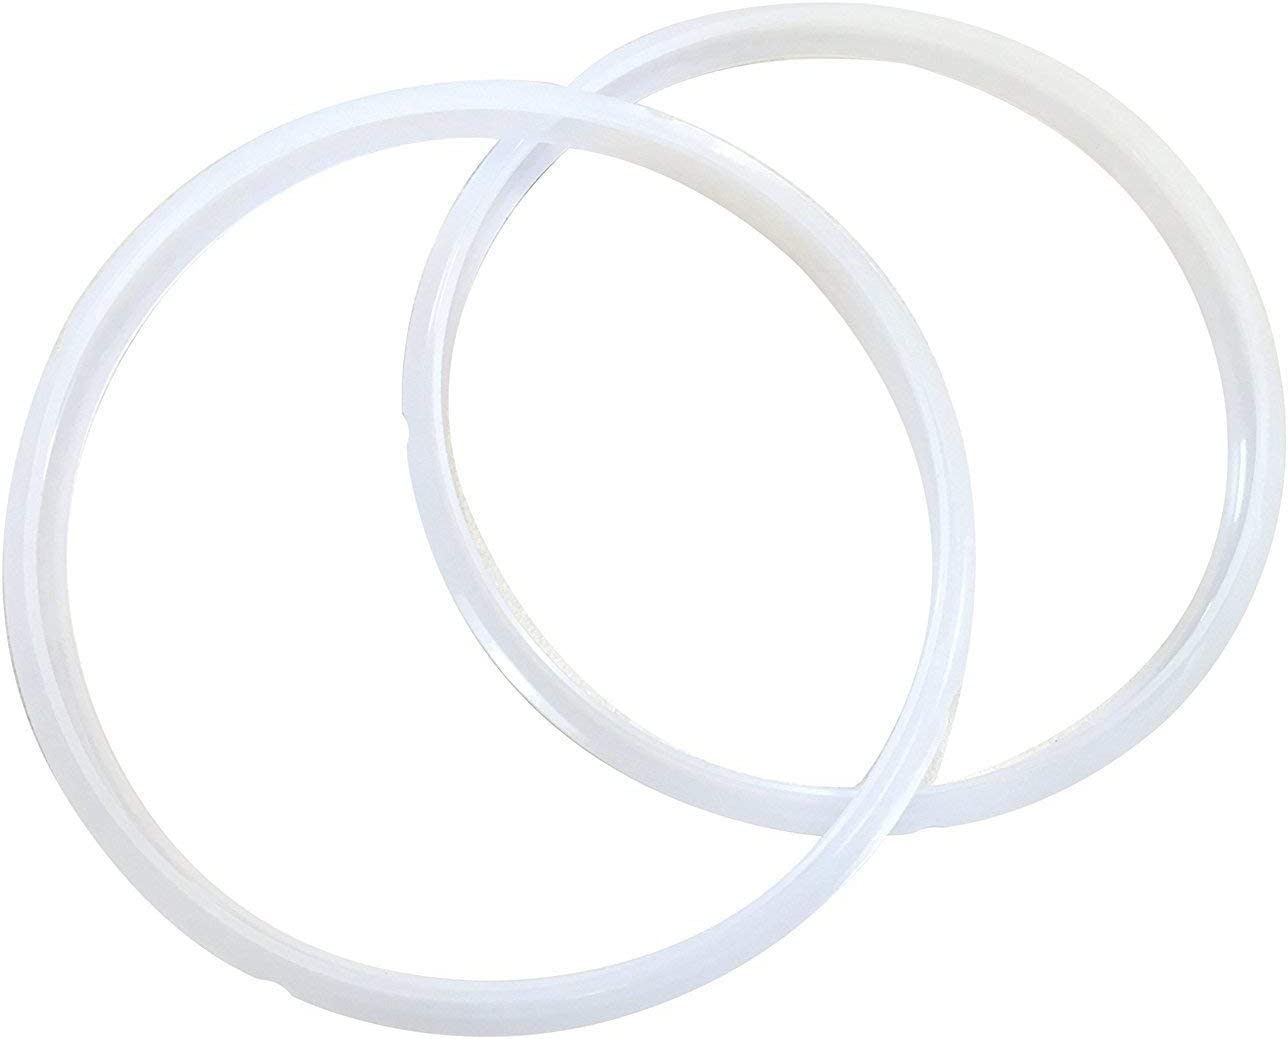 """Twin Pack: 2 GJS Gourmet Rubber Gasket (Sealing Ring) Compatible With 4 Quart Cook's Essentials Electric Pressure Cooker (2, 4 Quart)"". These gaskets are not created or sold by Cook's Essentials."